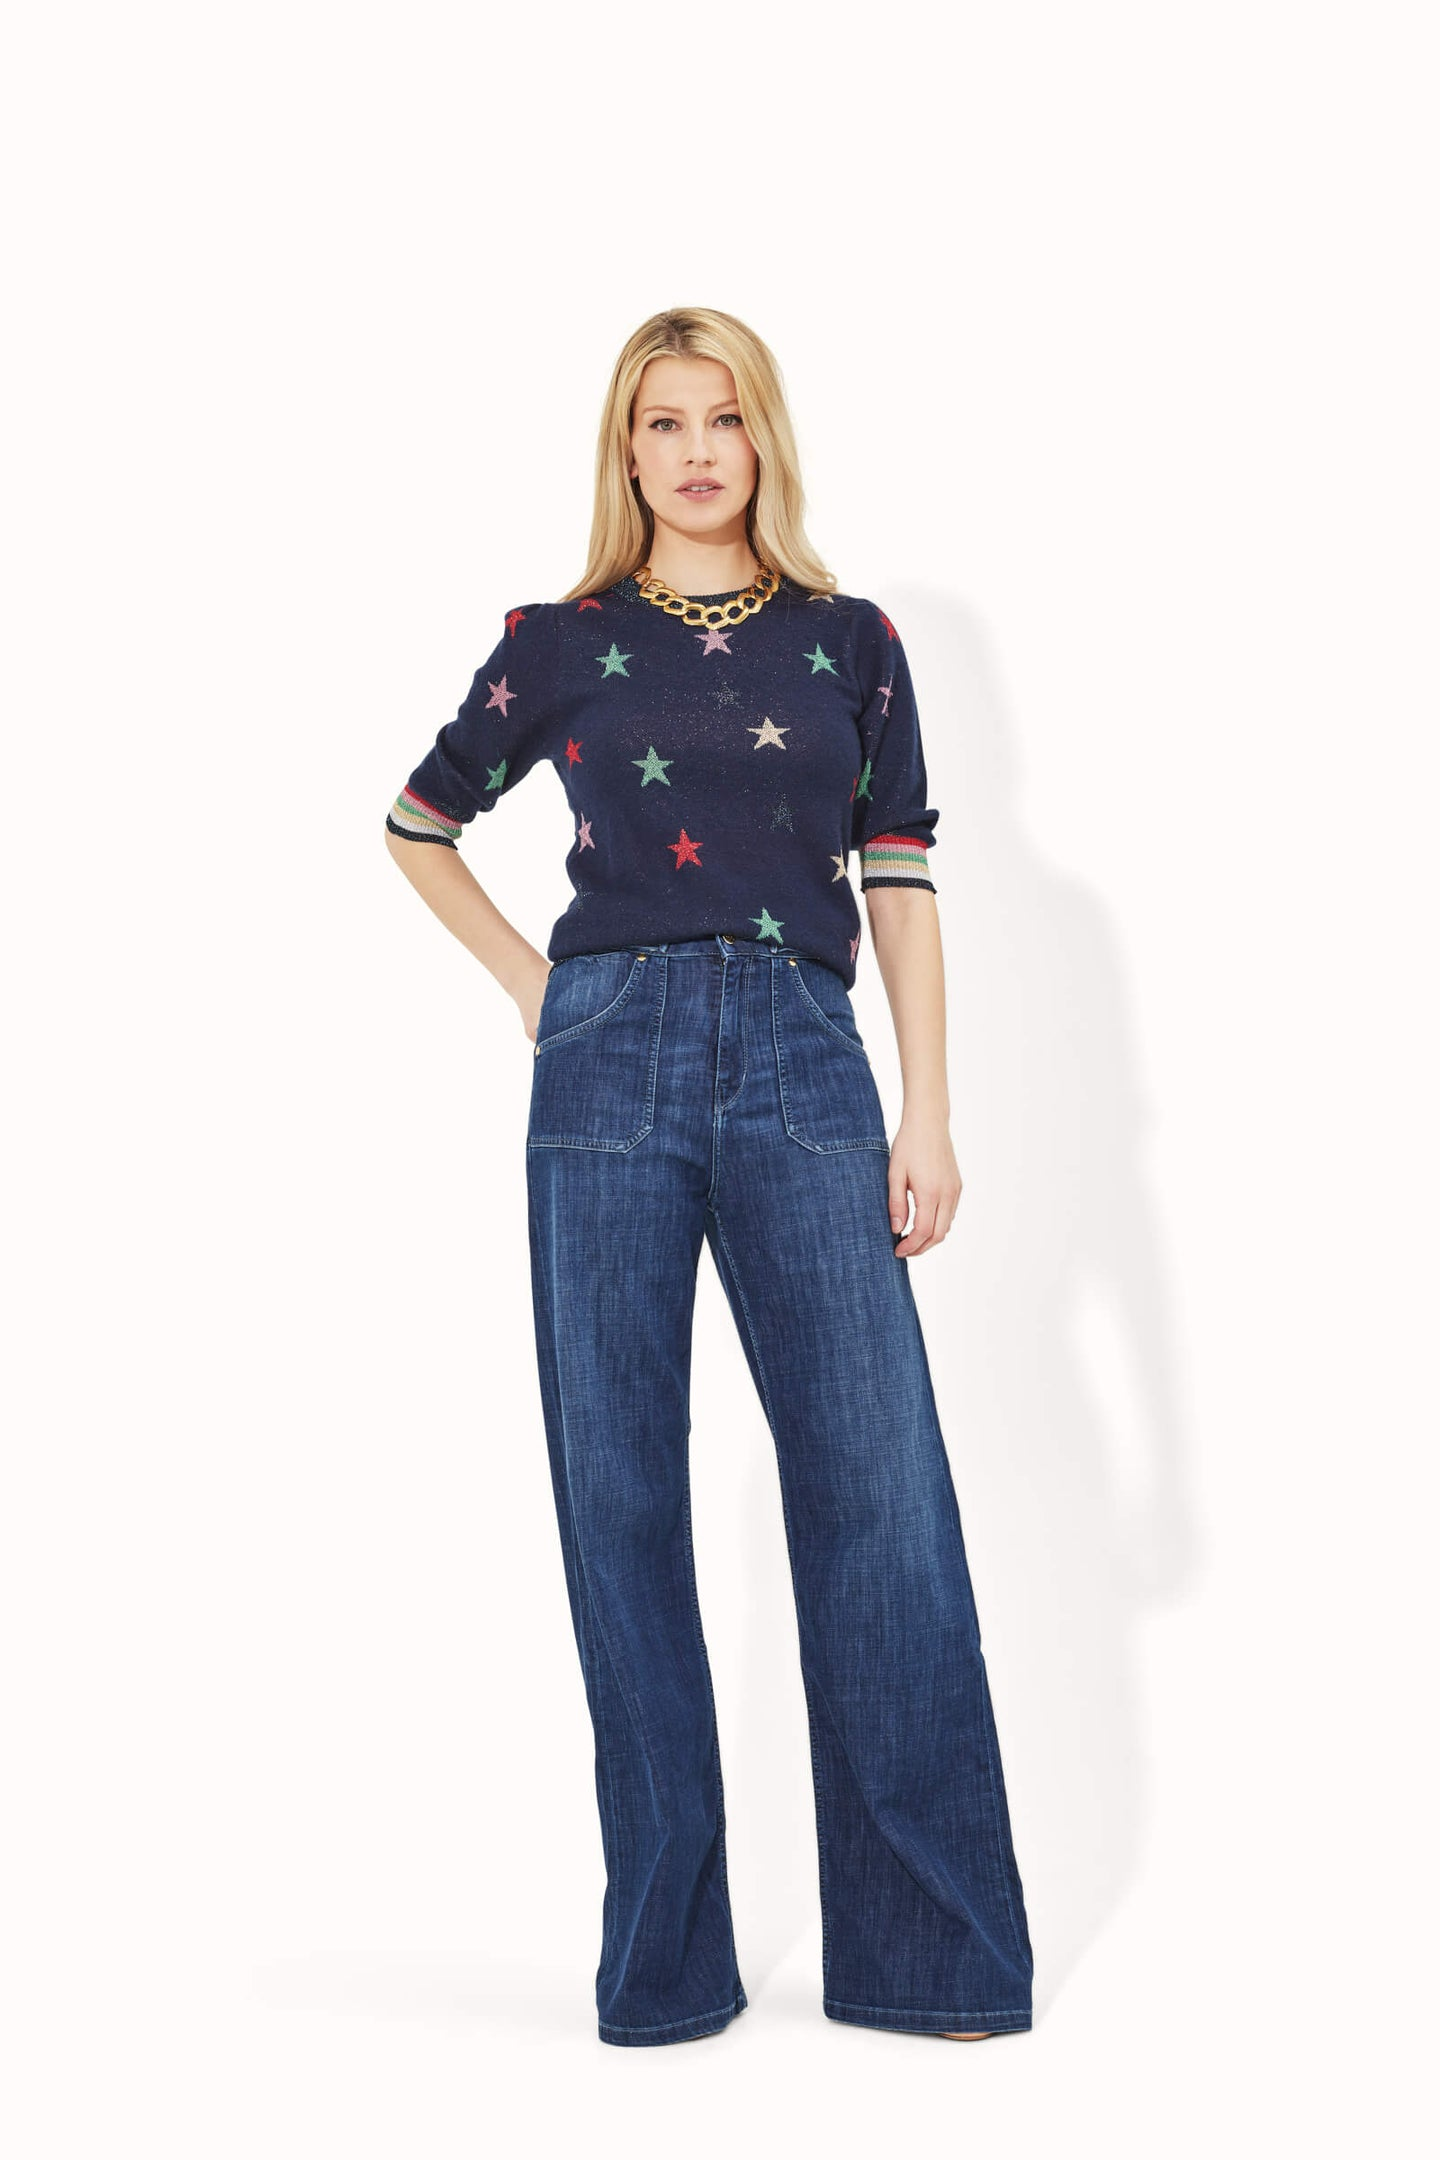 Minnie The High Top Flared Jeans - Moonlit Morning